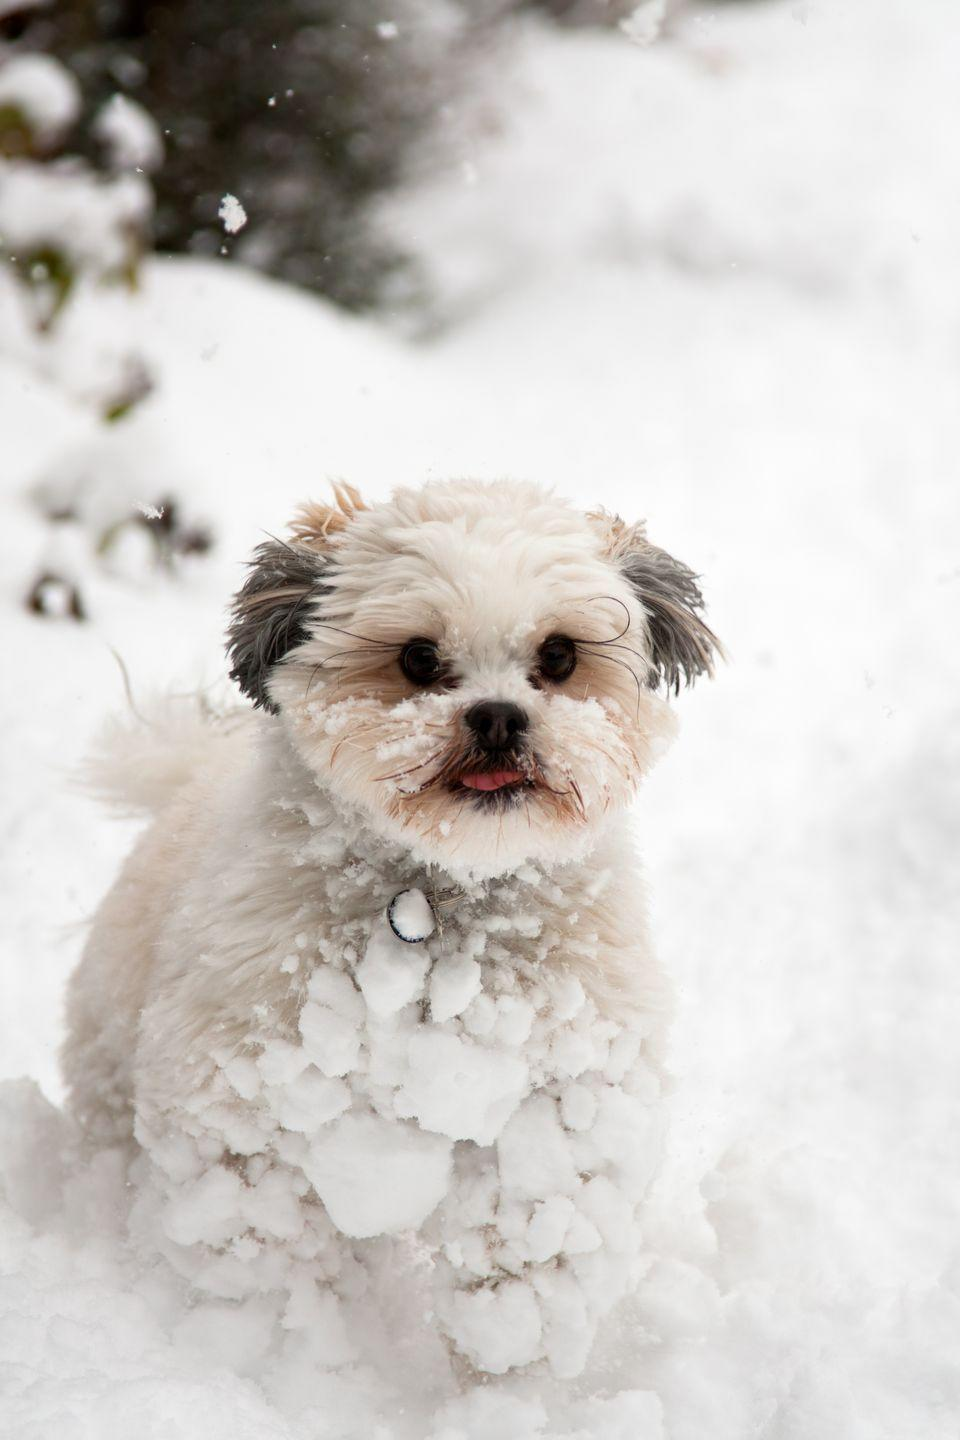 """<p>Originally, the Lhasa Apso was bred to serve as guard dogs at monasteries and palaces in the heights of the Himalayas. This <a href=""""https://www.goodhousekeeping.com/life/pets/advice/g1754/small-dog-breeds/?slide=15"""" rel=""""nofollow noopener"""" target=""""_blank"""" data-ylk=""""slk:small breed"""" class=""""link rapid-noclick-resp"""">small breed</a><span class=""""redactor-invisible-space""""> l</span>oves brisk walks and clowning around, so lots of Lhasa owners keep their full-grown pets in the shorter, trimmer """"puppy cut"""" to keep trimming minimal. It reduces grooming time on the otherwise fluffy furballs, but they look beautiful if you leave their luxurious fur longer, too. </p>"""